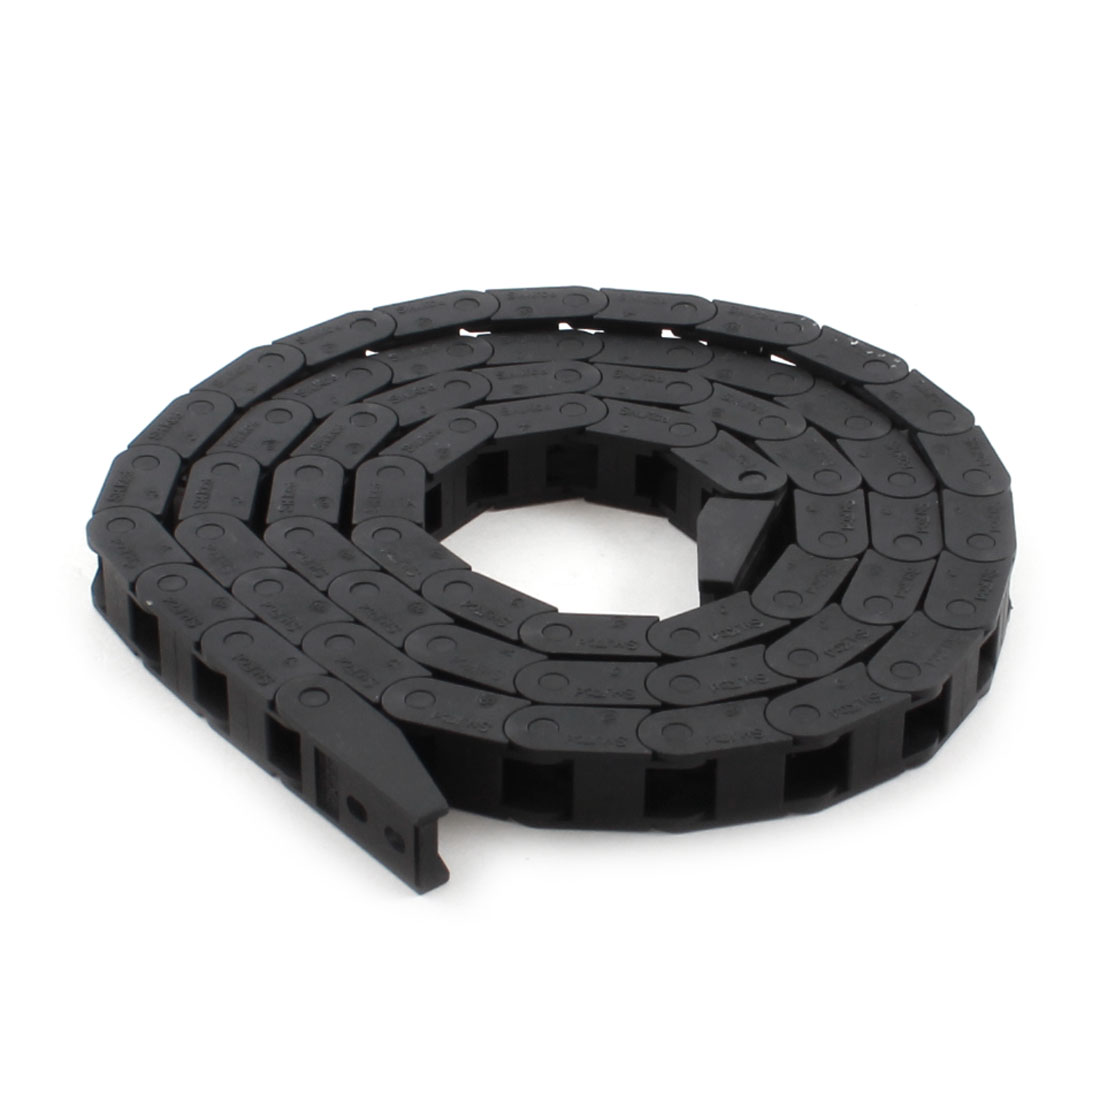 105cm Long 7mm x 7.3mm Black Plastic Towline Cable Drag Chain